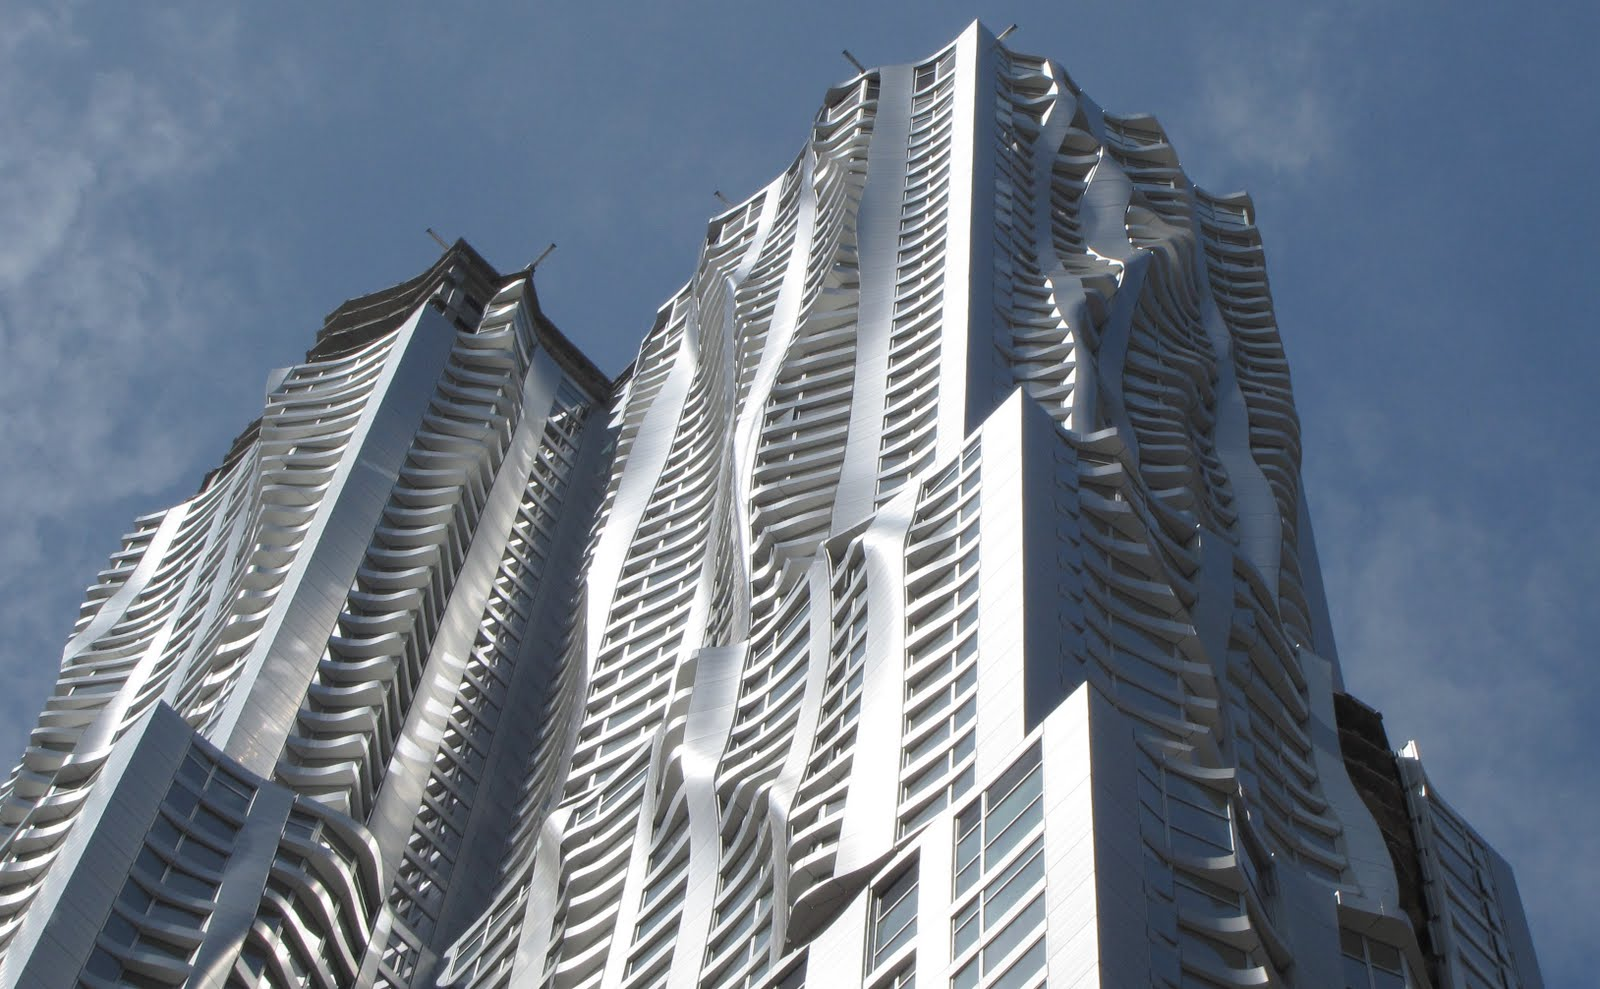 Frank gehry building in las vegas about to have a big for New york architettura contemporanea